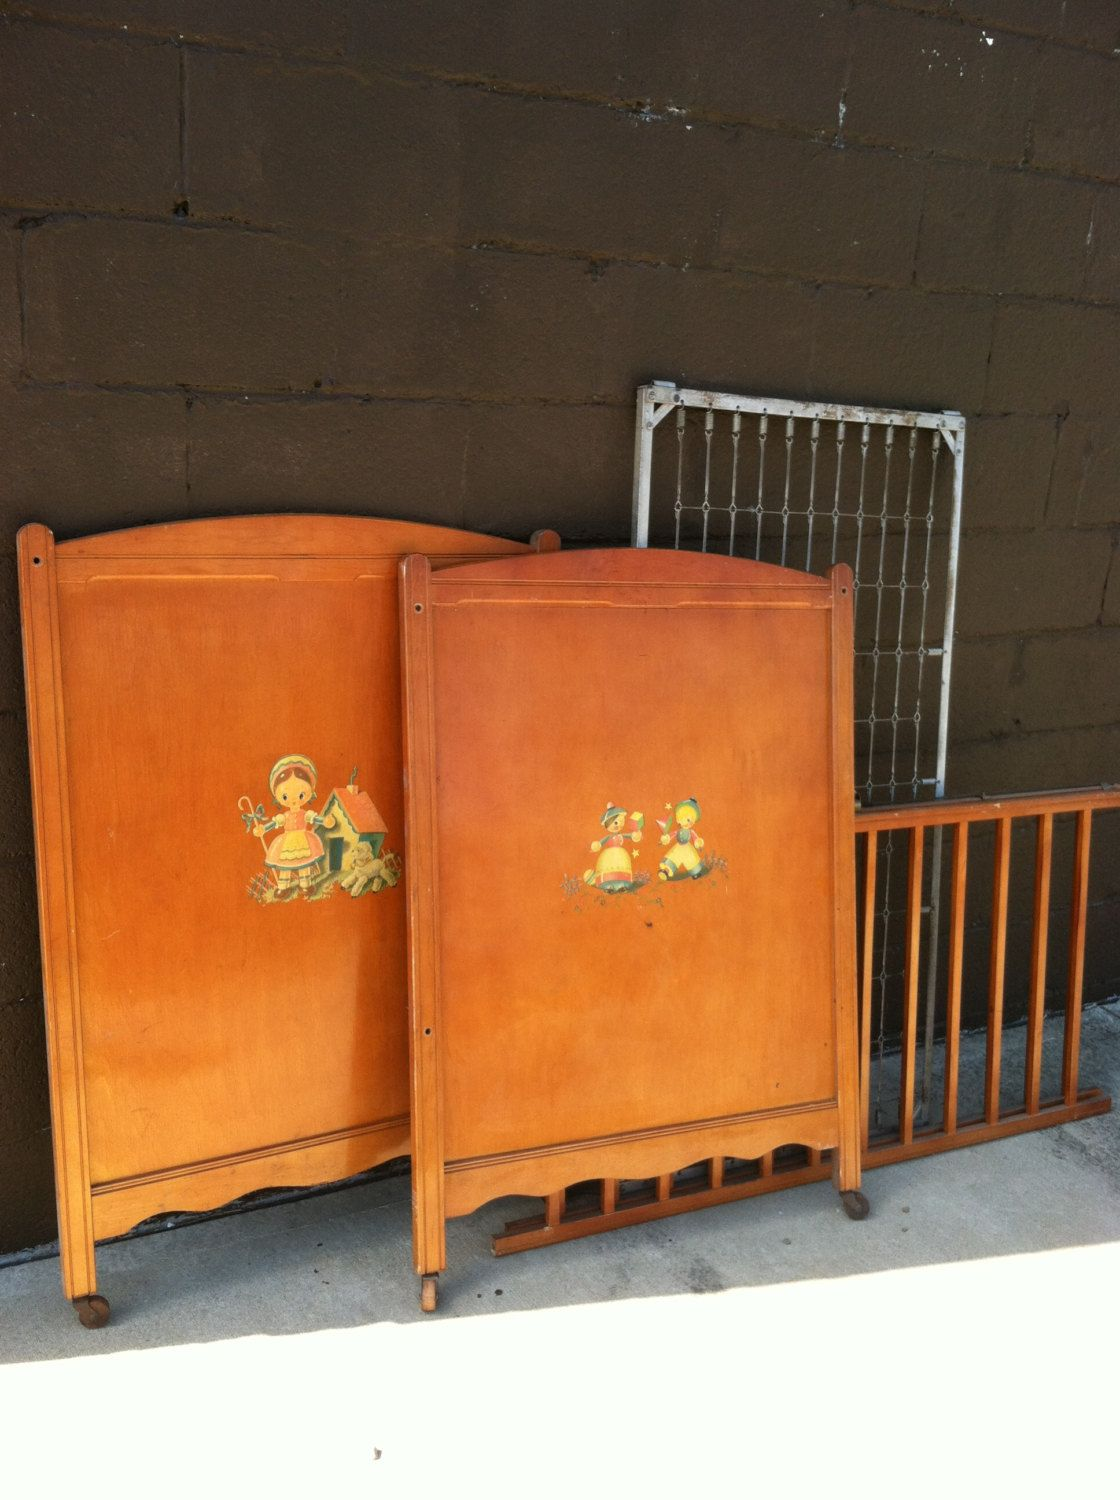 Vintage baby crib for sale -